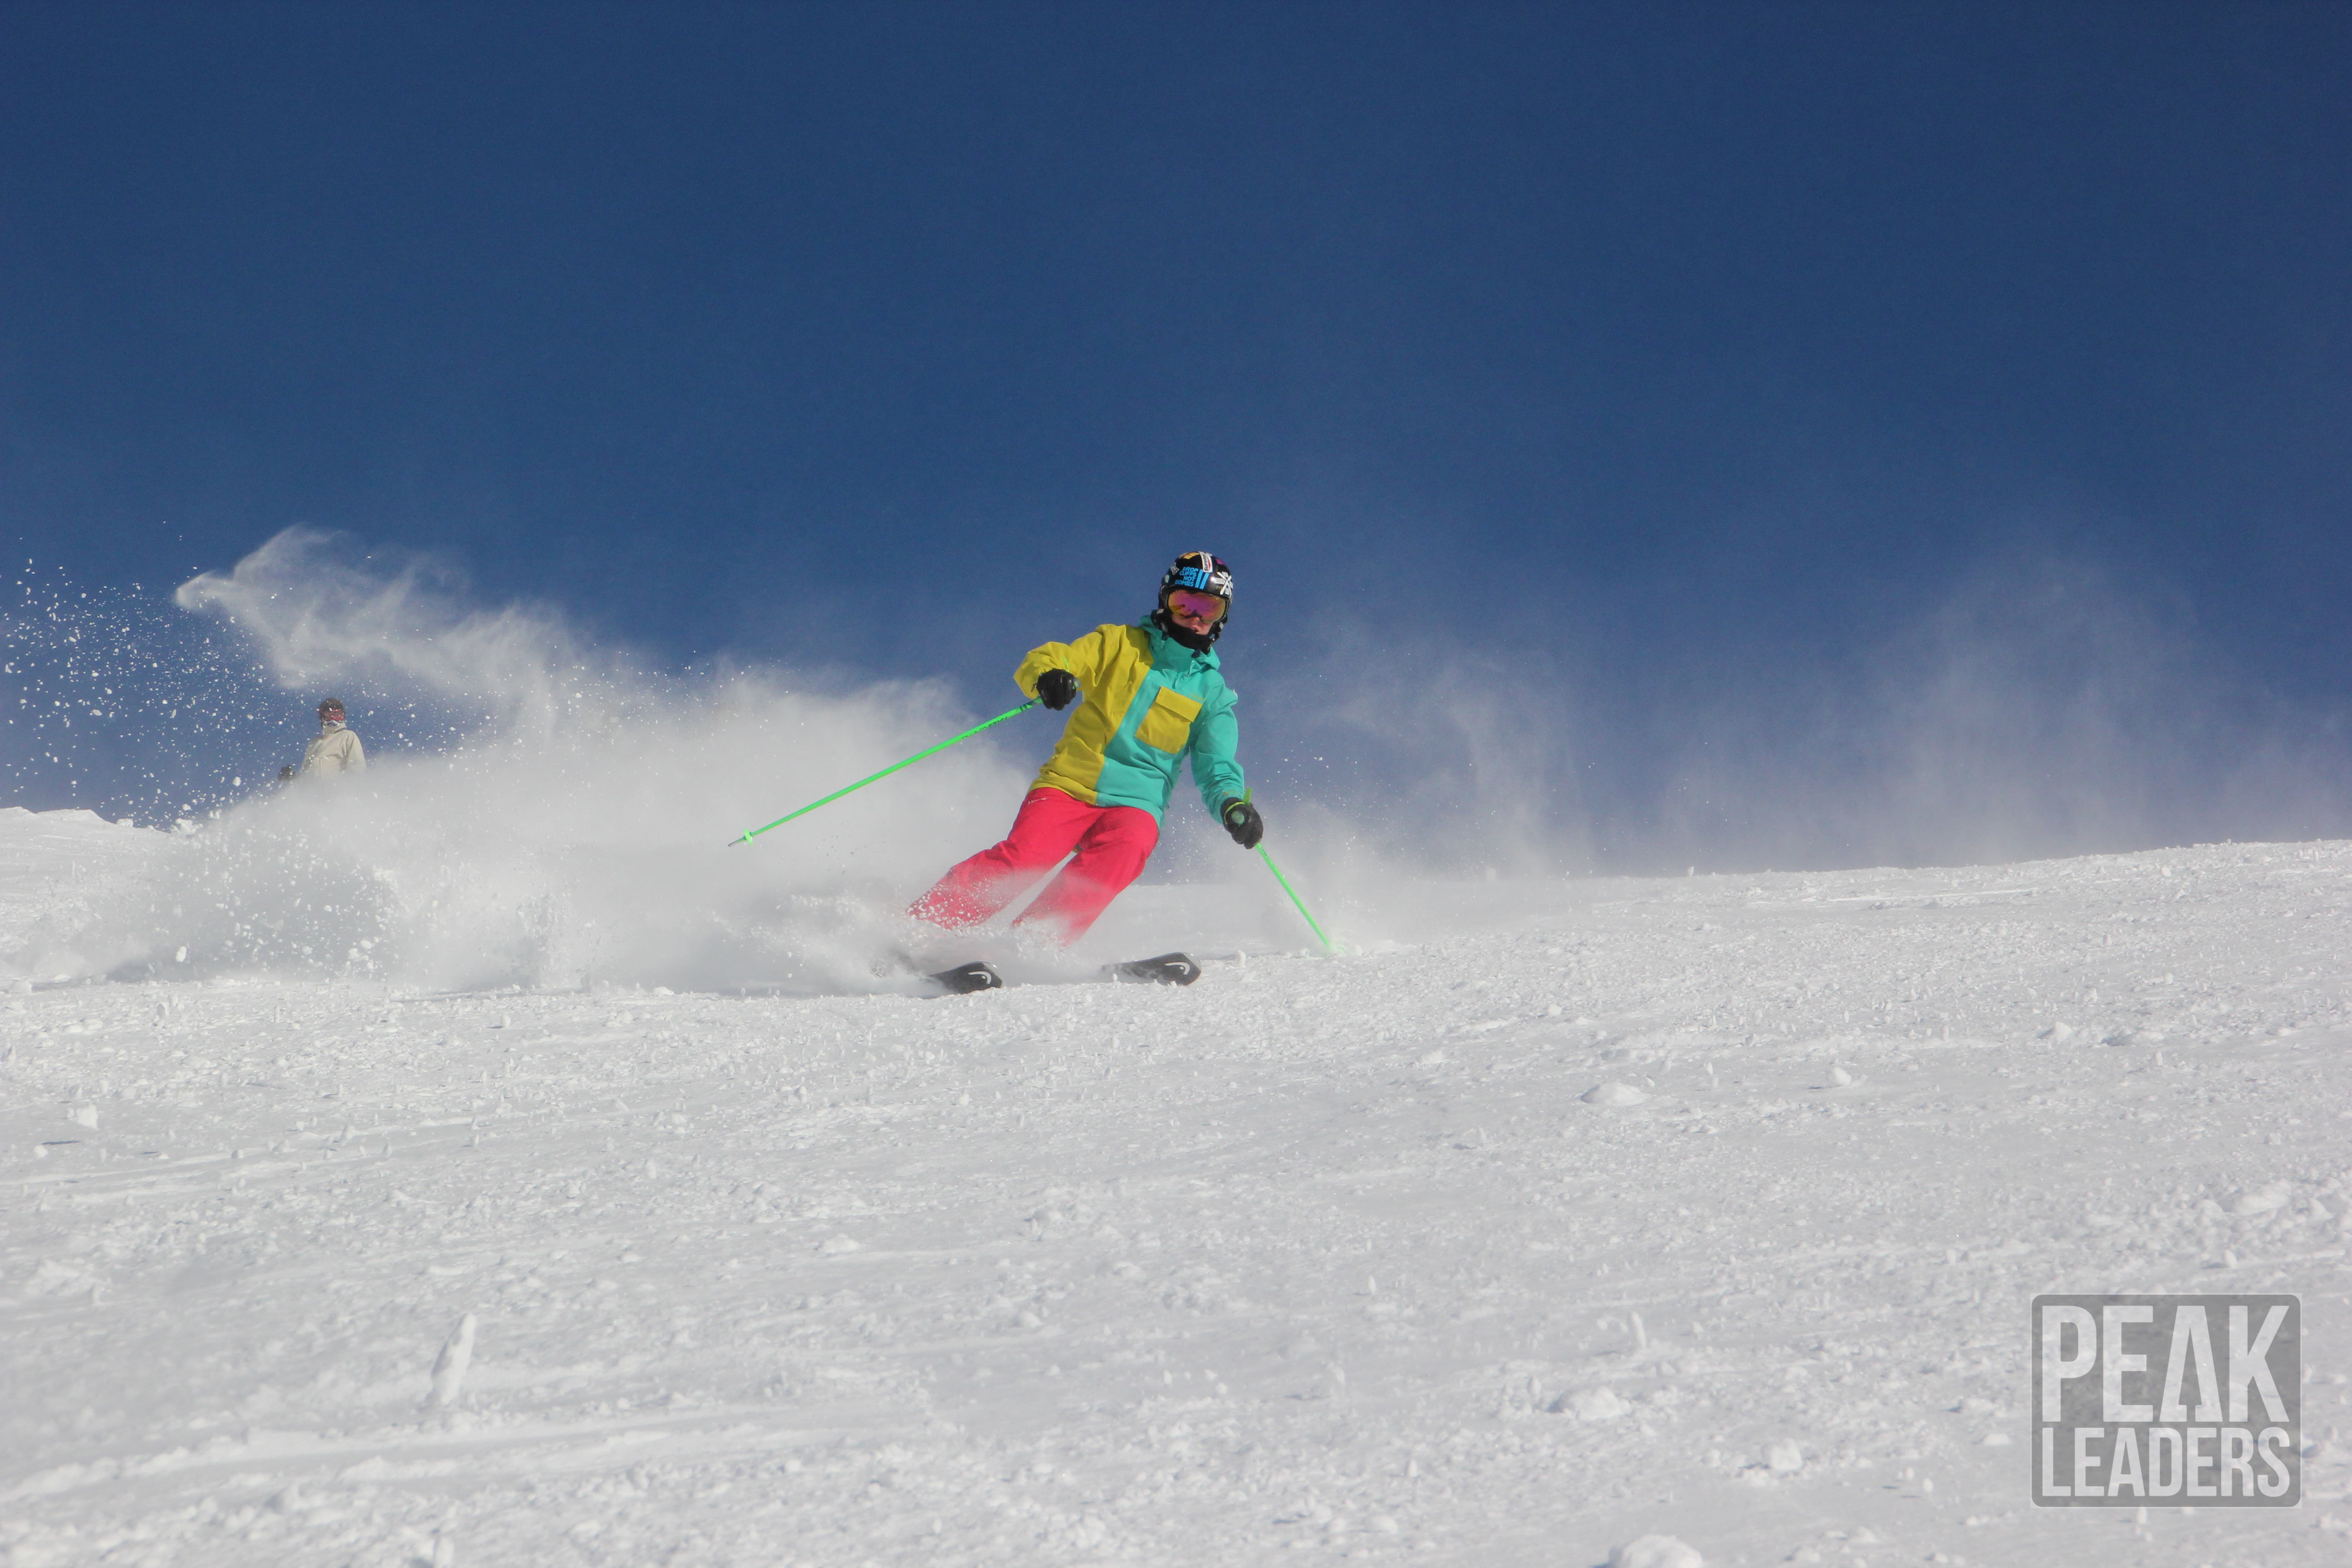 Fresh pow and blue skies on the mountain, practicing long radius turns